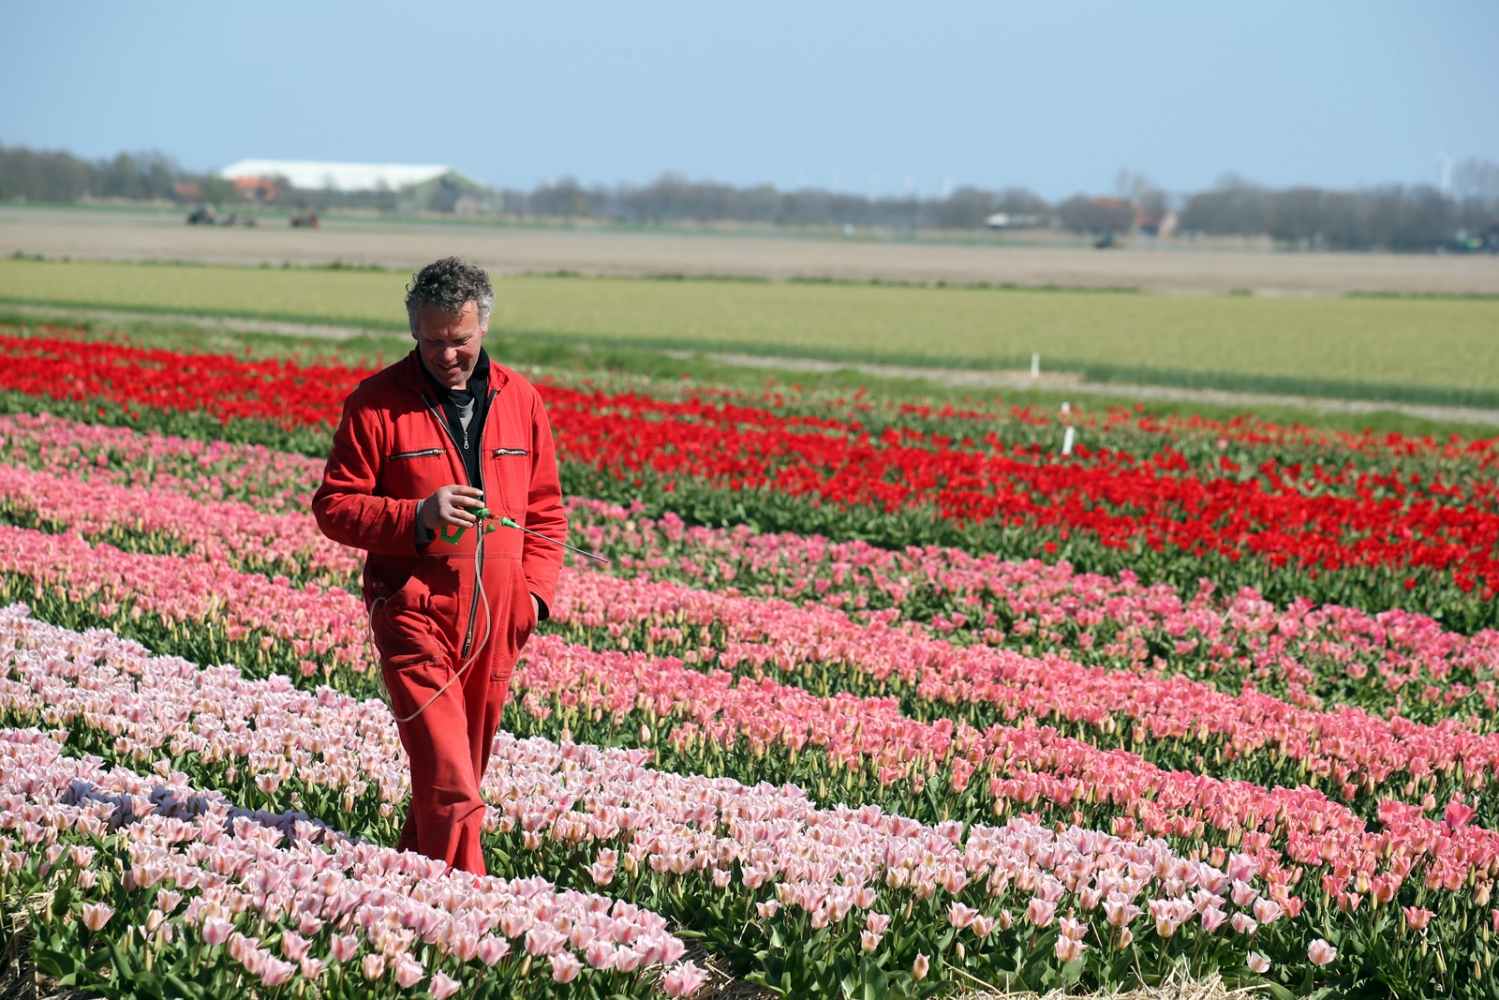 Tulip Grower Pete Fesser, tend to his tulip field near Anna Paulowna, Nord-Holland.